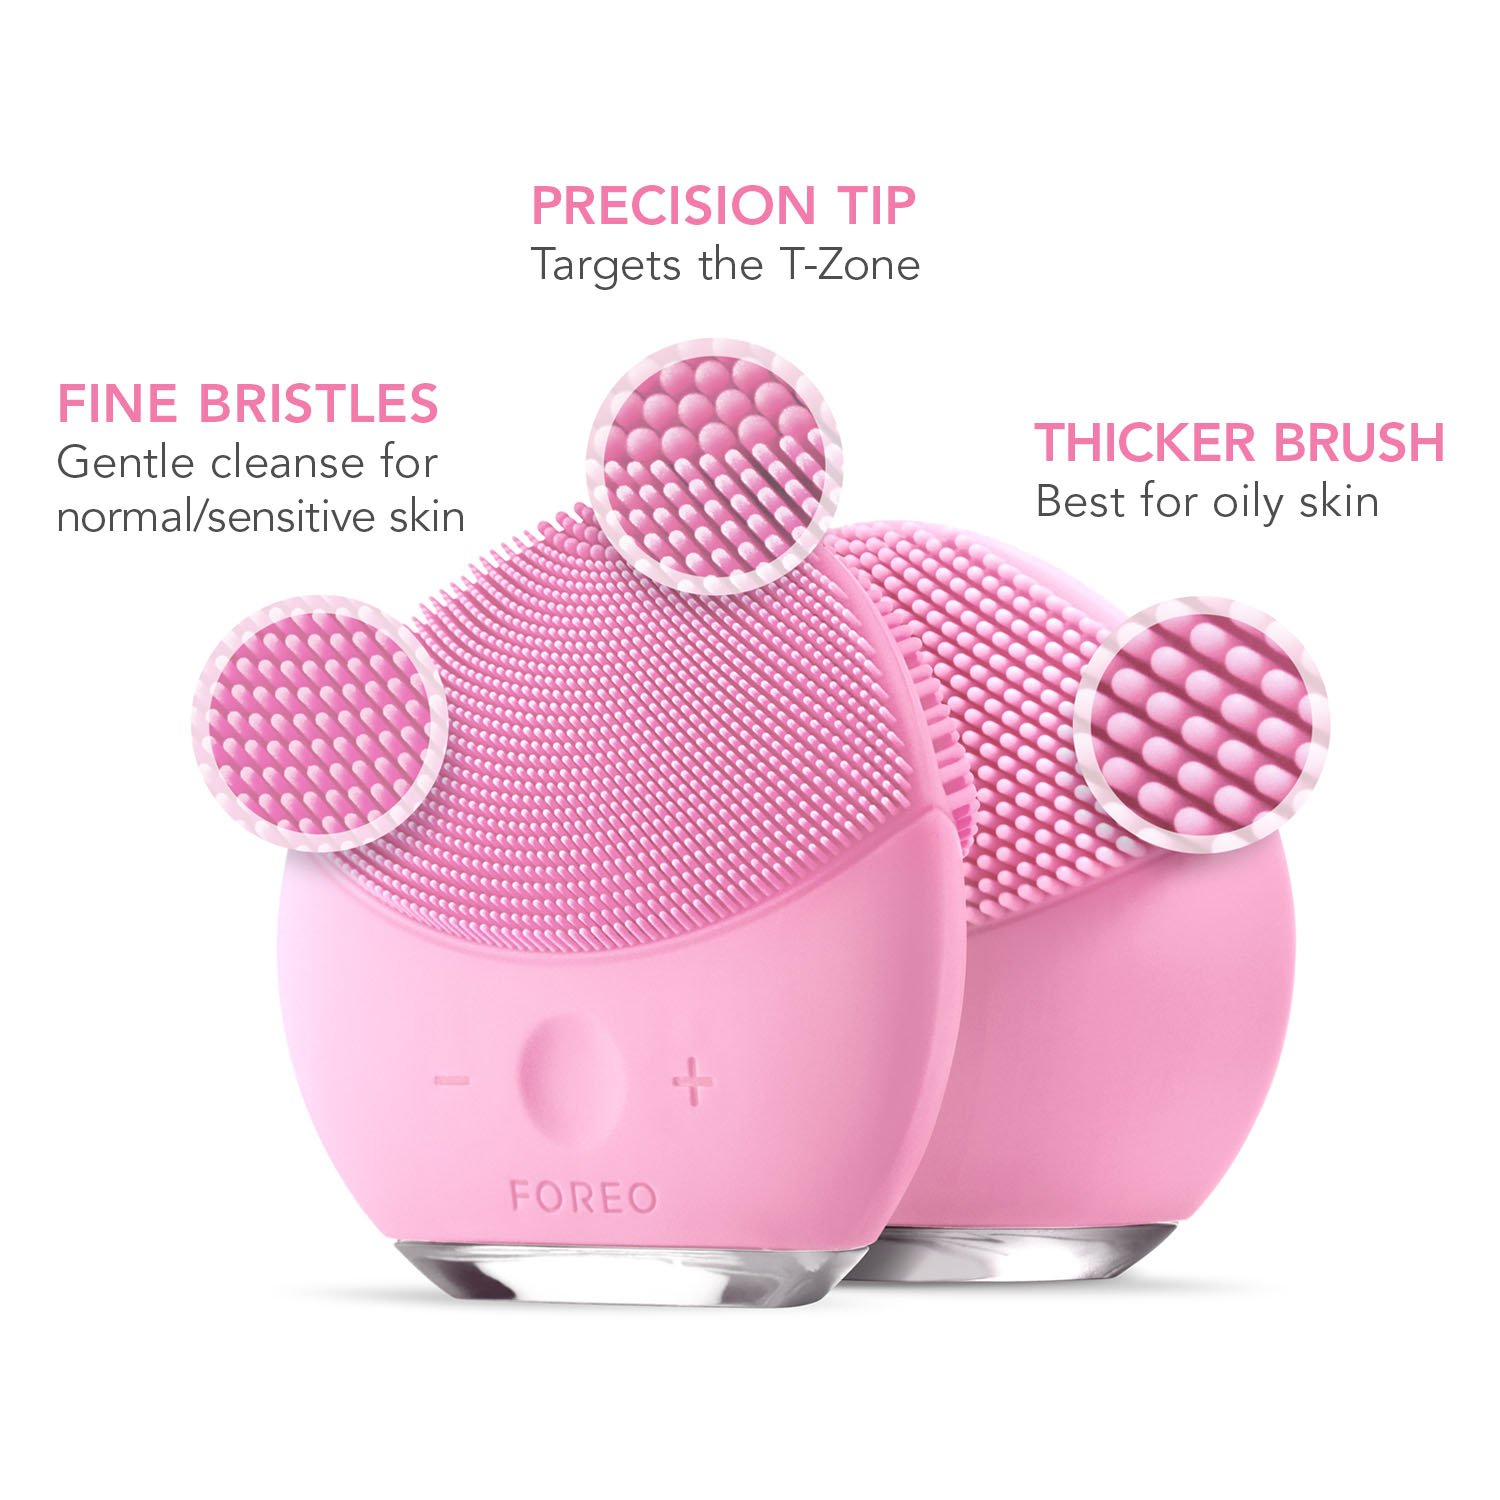 FOREO LUNA mini 2 Facial Cleansing Brush, Gentle Exfoliation and Sonic Cleansing for All Skin Types, Pearl Pink by FOREO (Image #7)